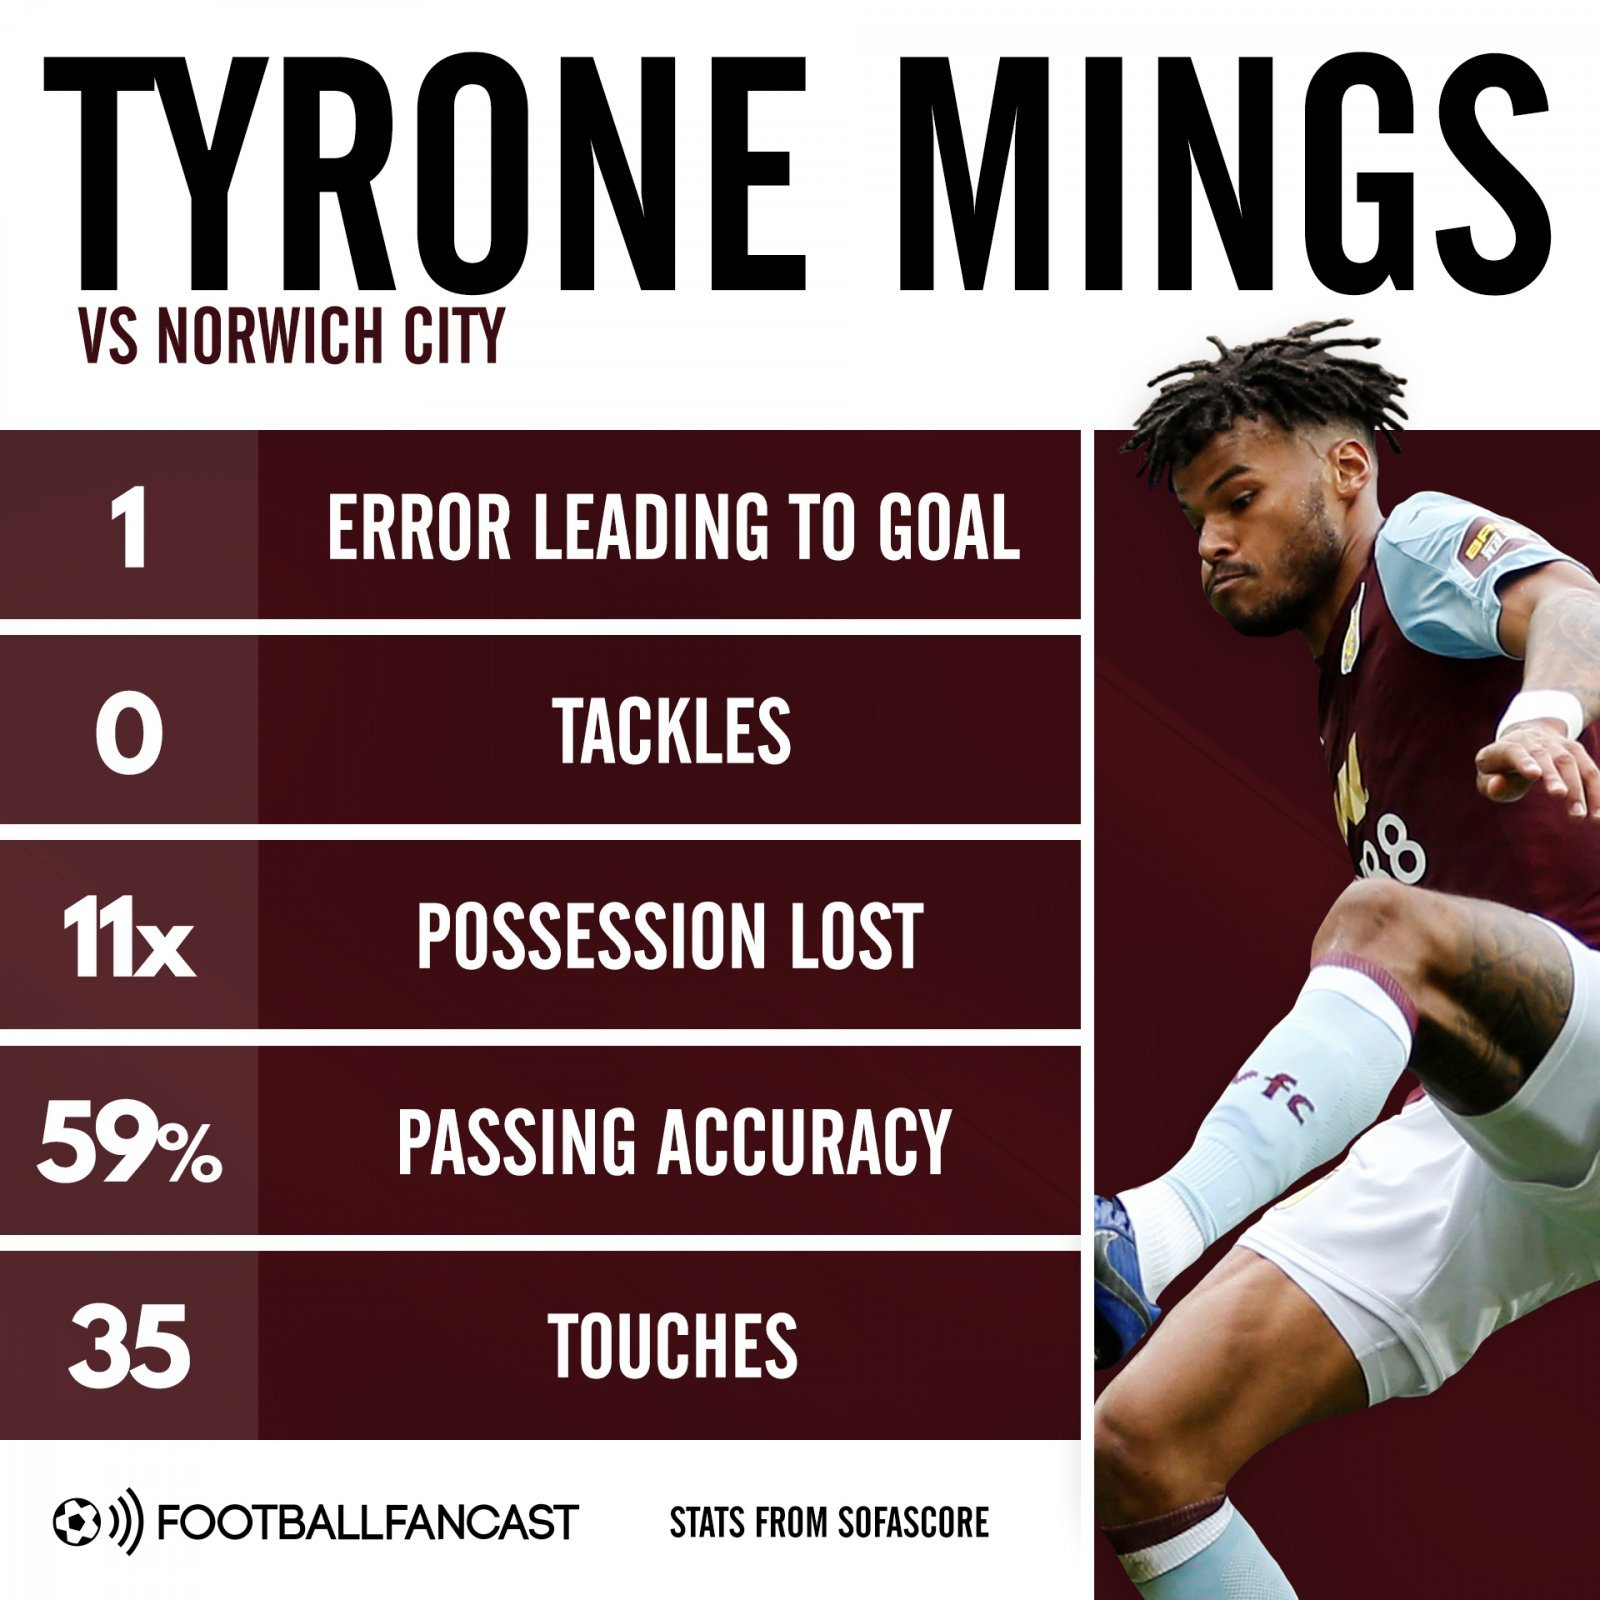 11x possession lost, 0 tackles: AVFC colossus dispels early hype with drab display – opinion